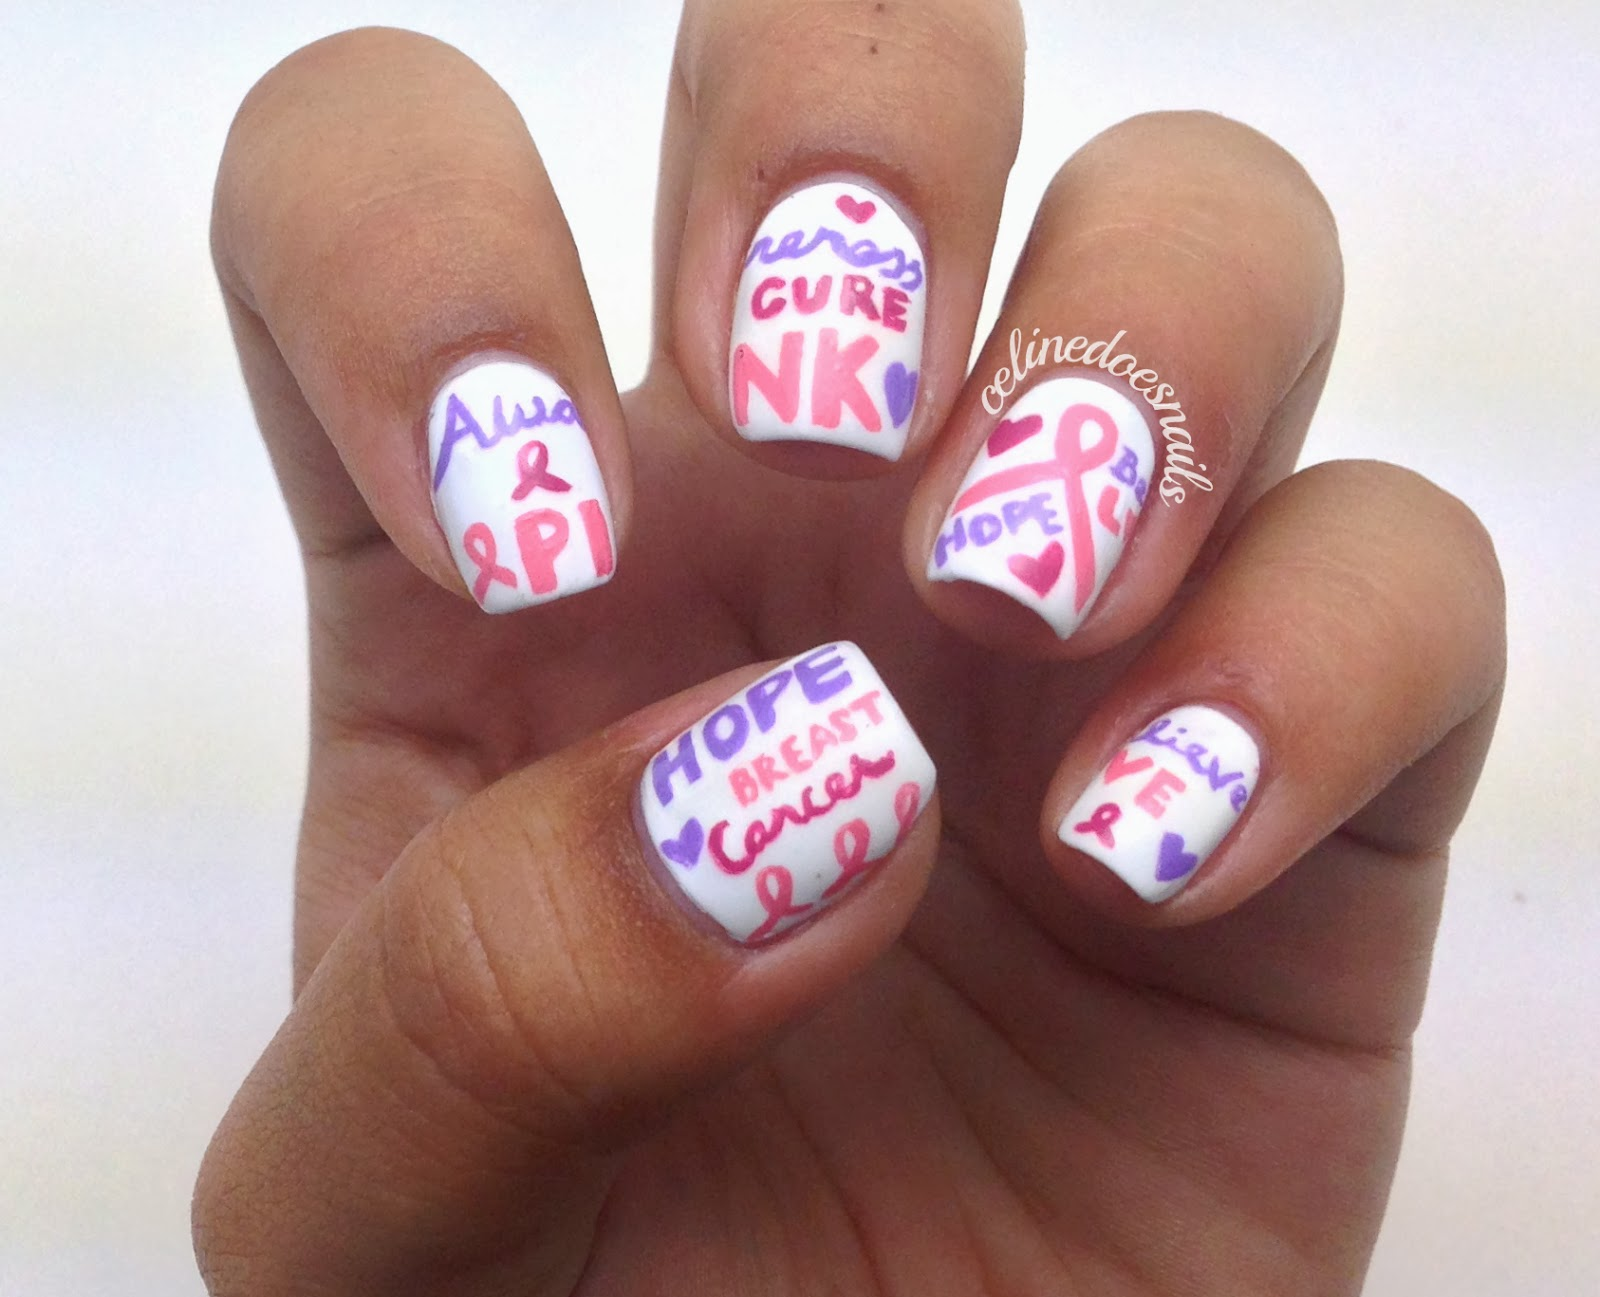 Nails by celine breast cancer awareness nail art breast cancer awareness nail art prinsesfo Images